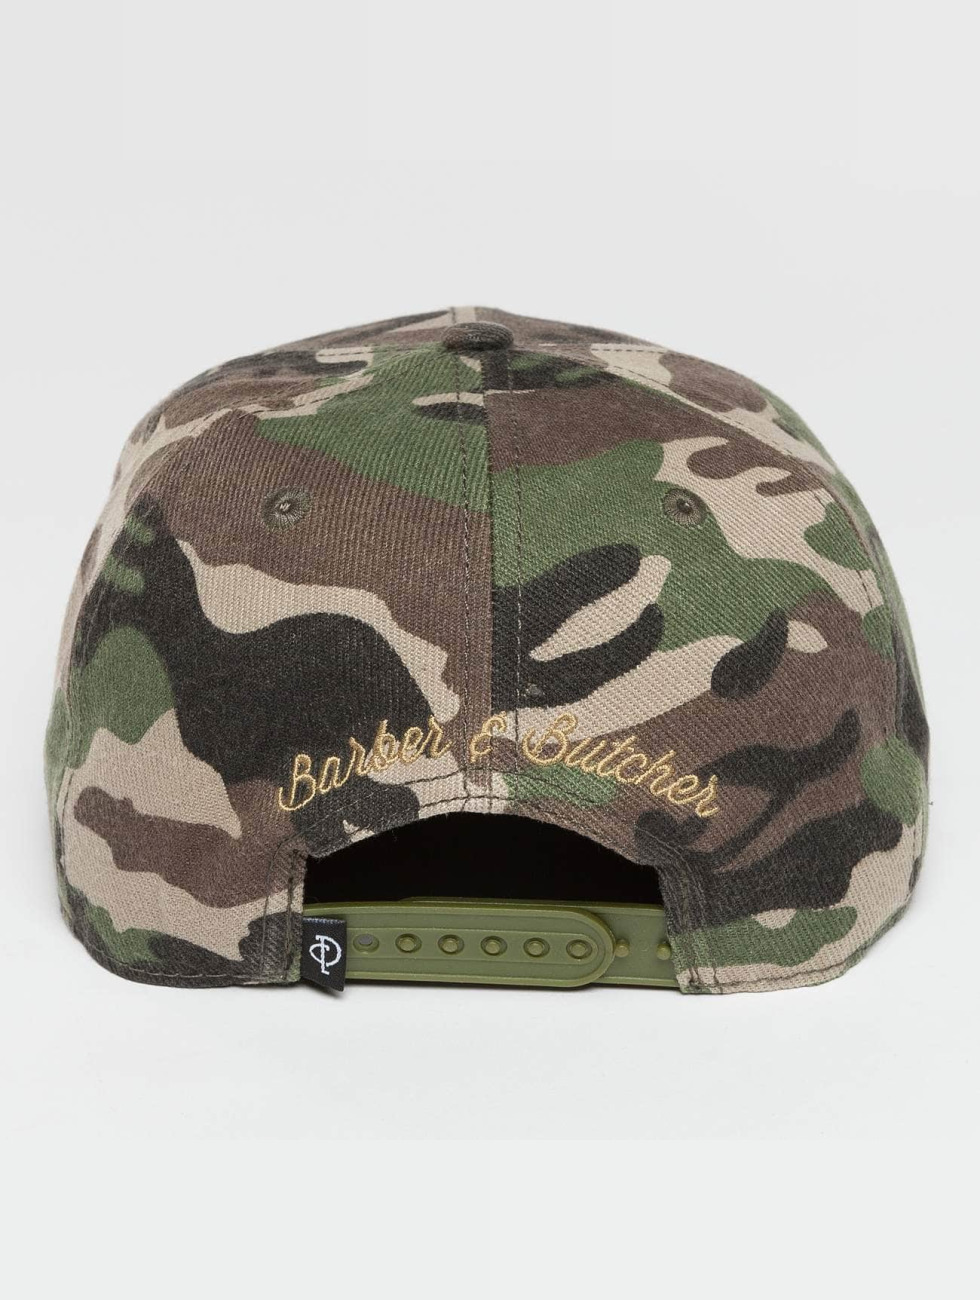 Distorted People Snapback Caps BB Blades camouflage